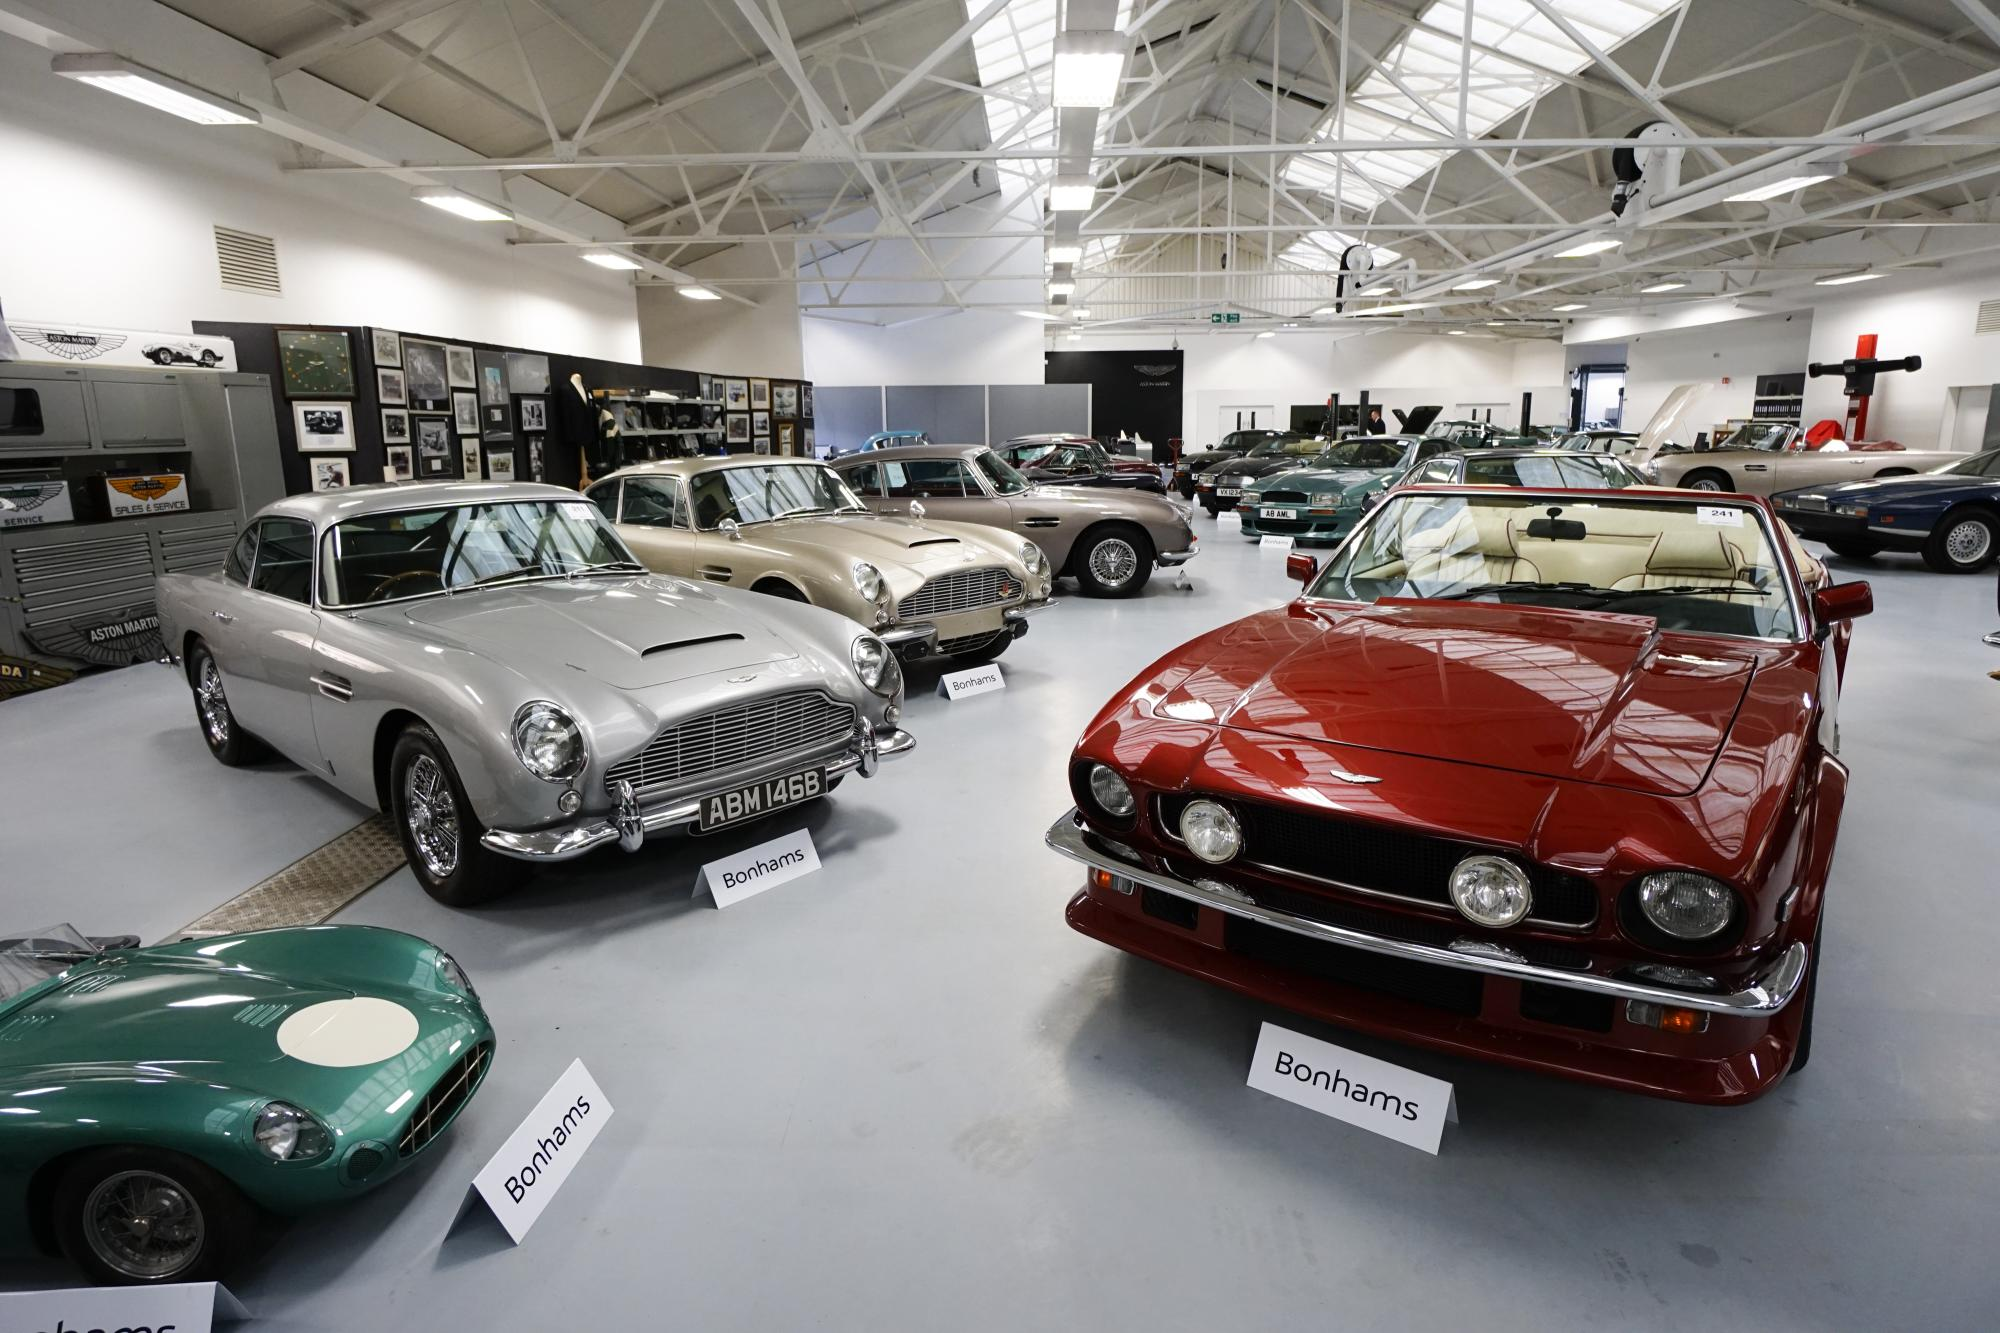 biggest bonhams sale to date at aston martin works | classic car